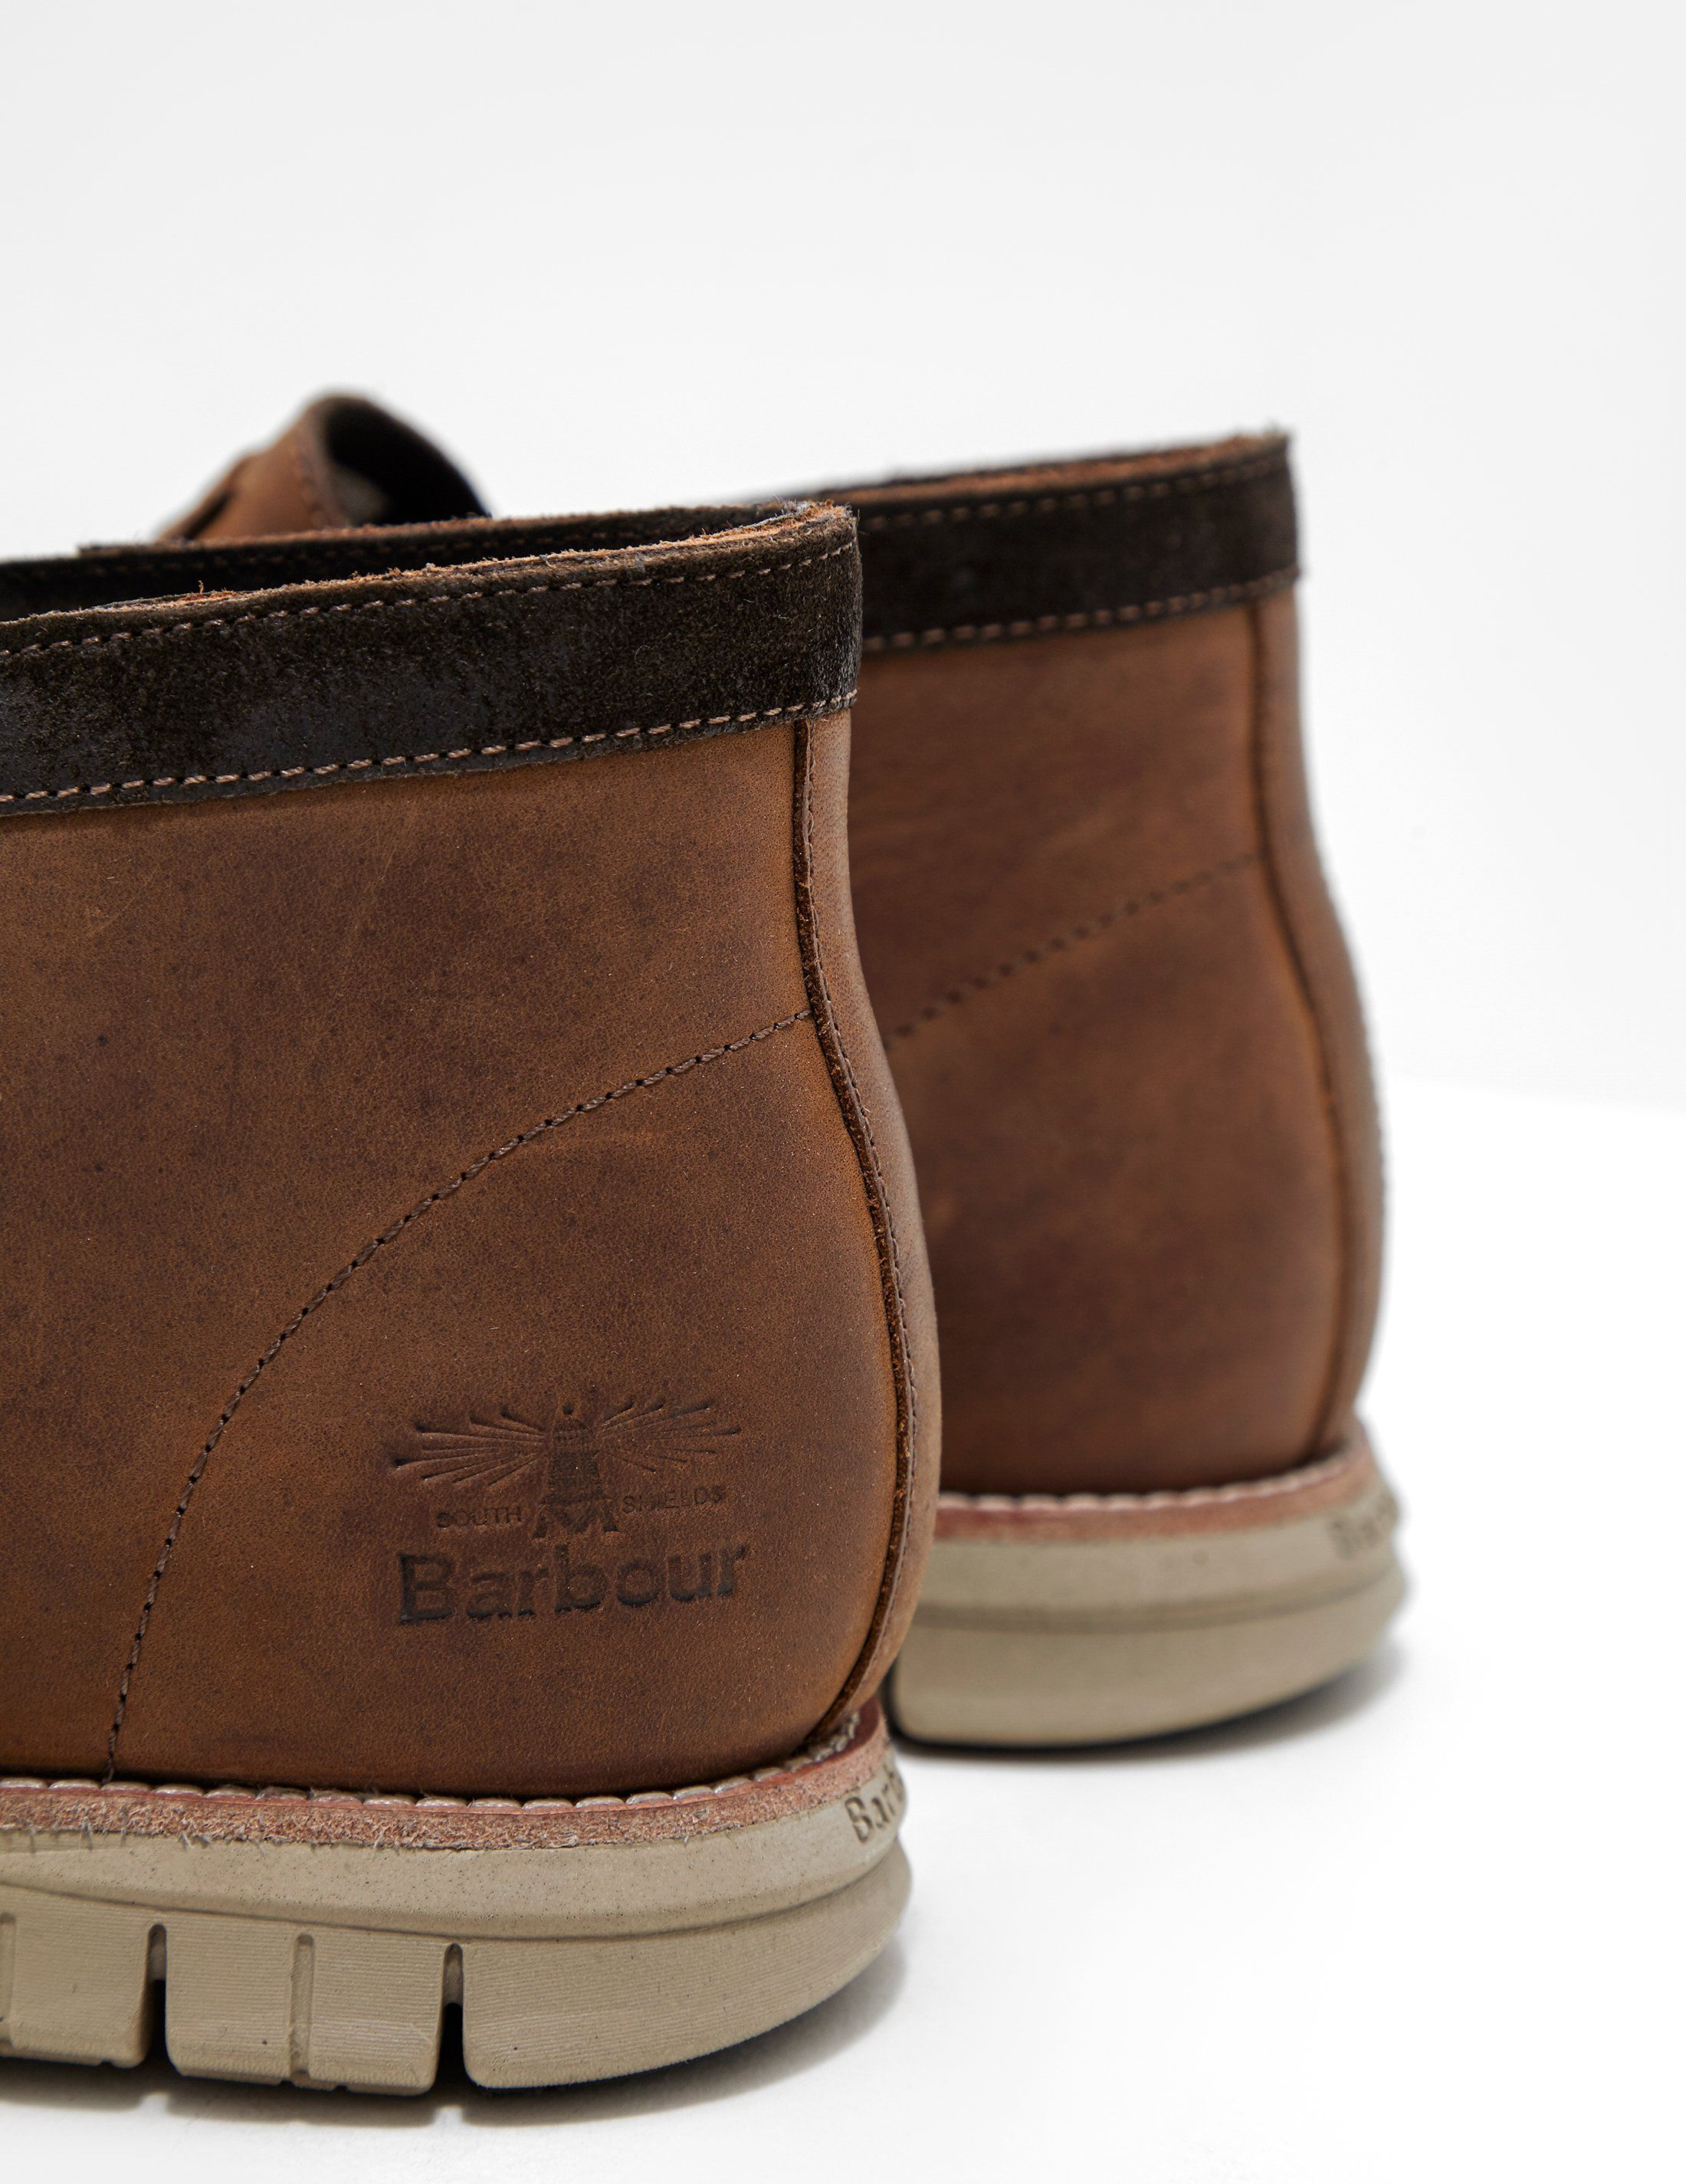 Barbour Boughton Boots